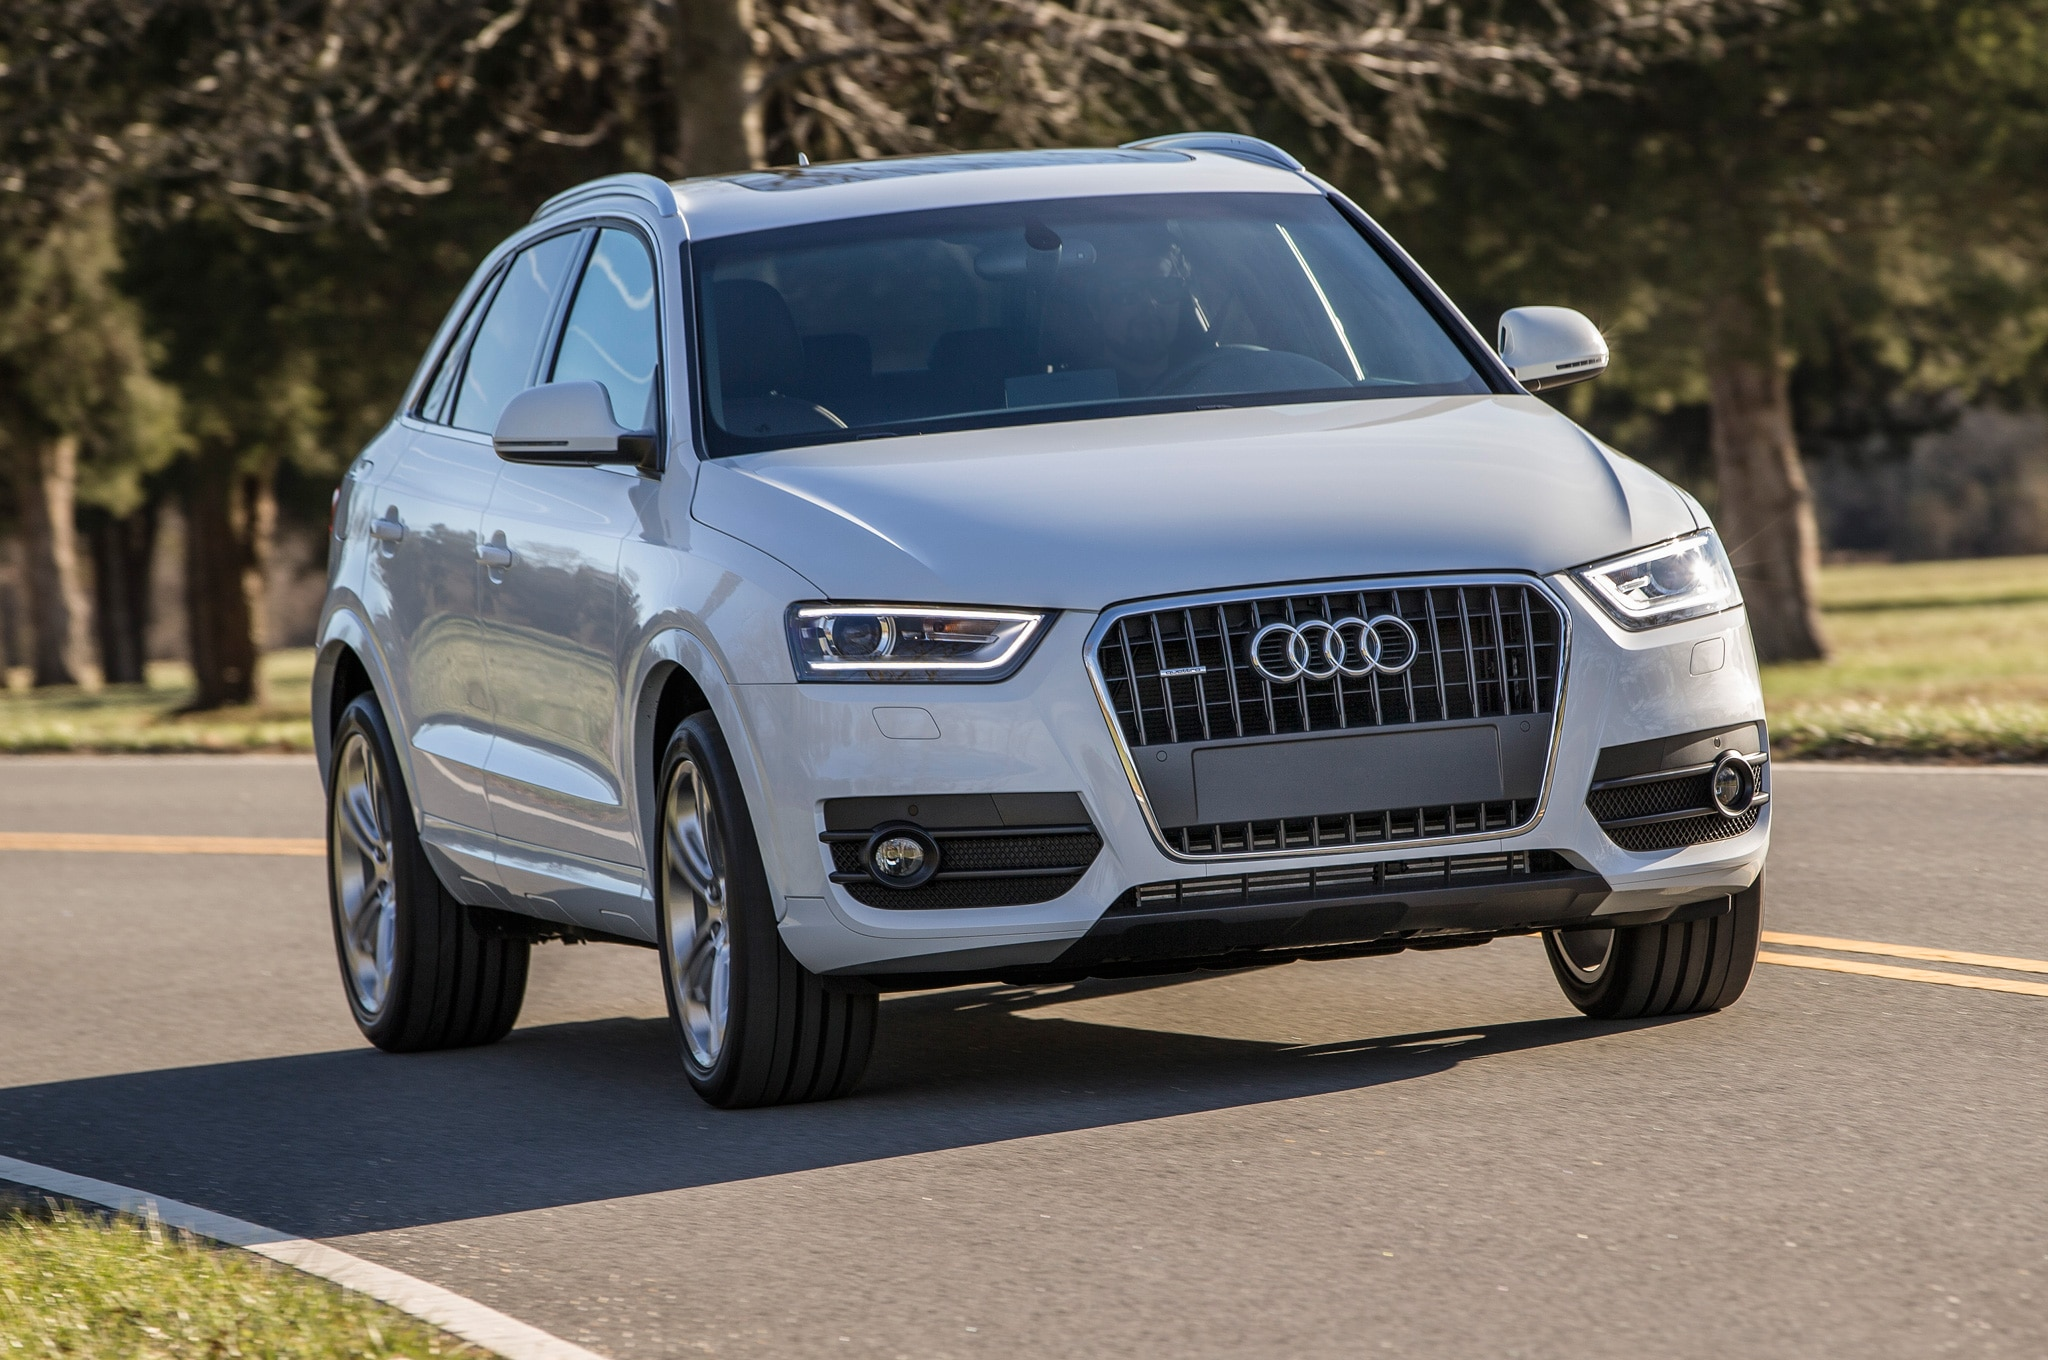 2015 Audi Q3 Front View On Road1